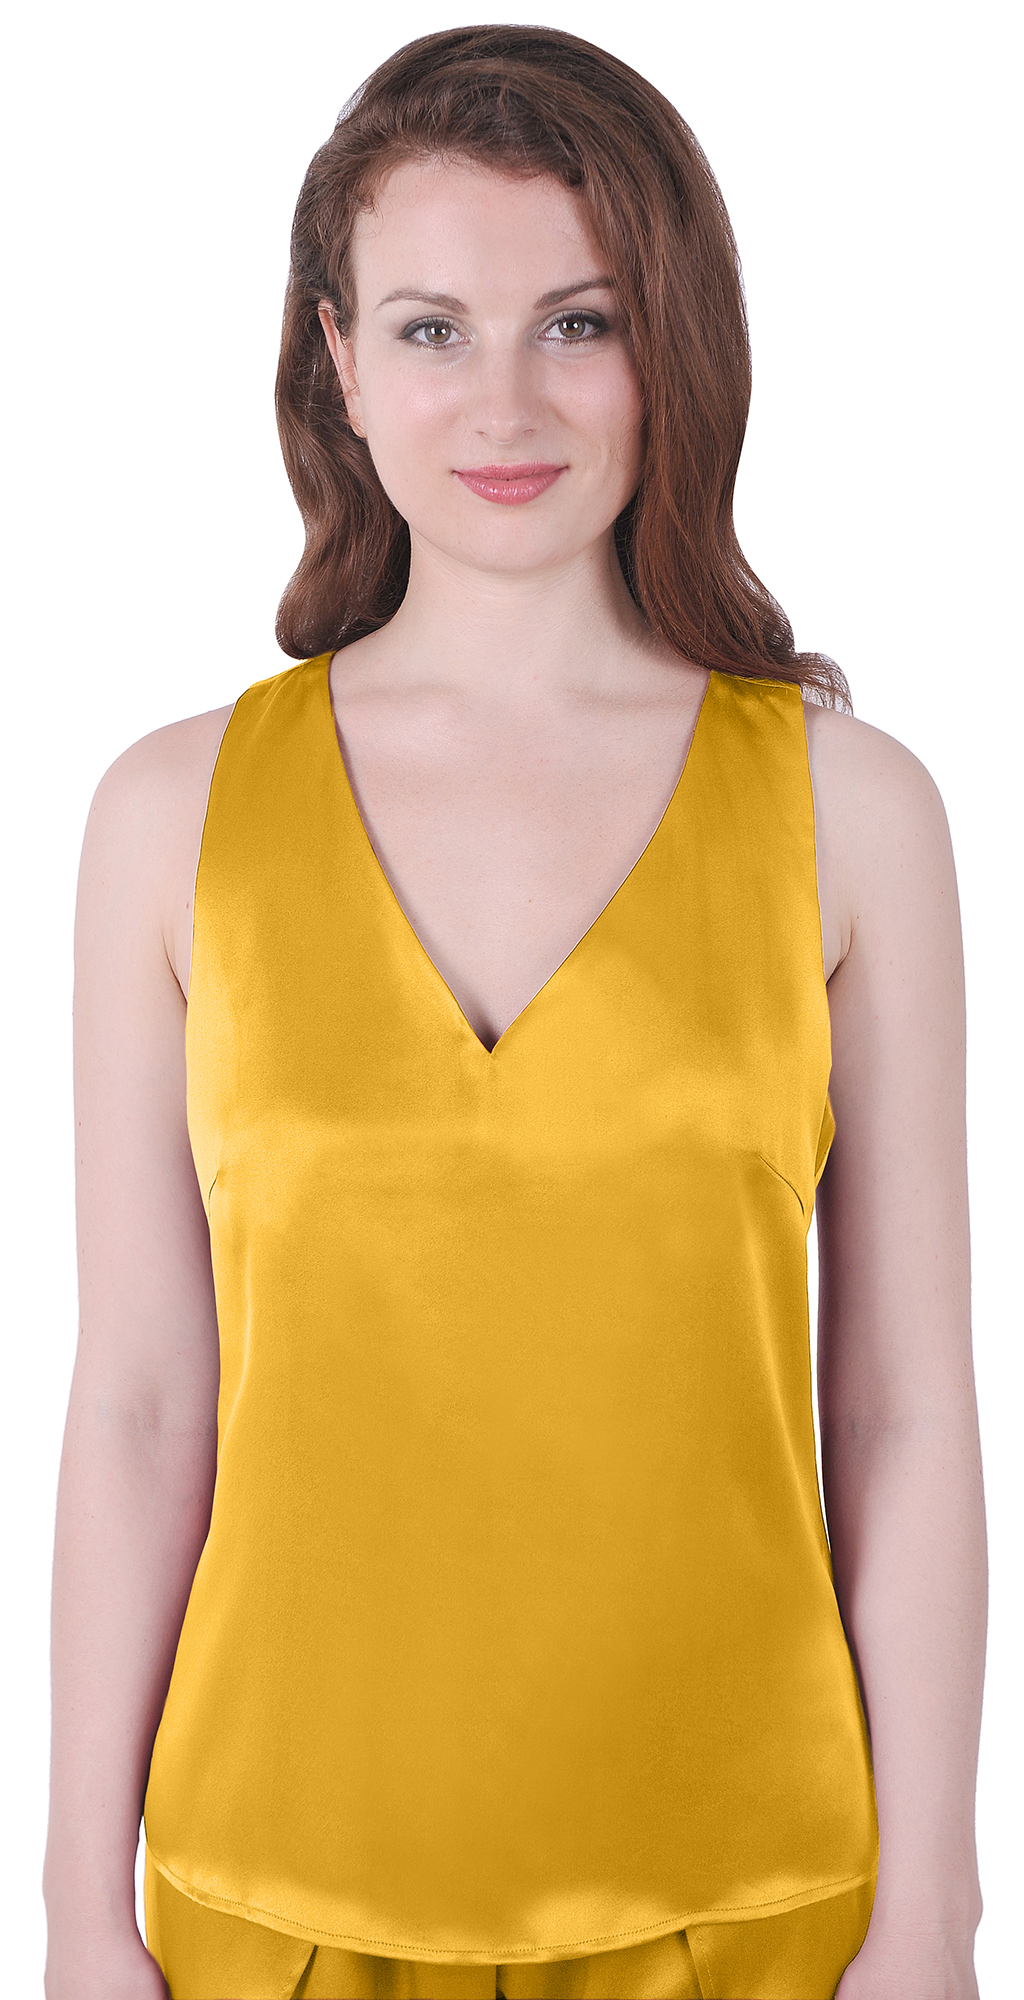 Gorgeous Women's Vest Tops Stay cool in hot weather, or layer up your look in ladies vest tops from the La Redoute collection. Choose from women's vest tops in bold block colours, pretty patterns and fabulous fabrics to add a touch of French style to your wardrobe this season.